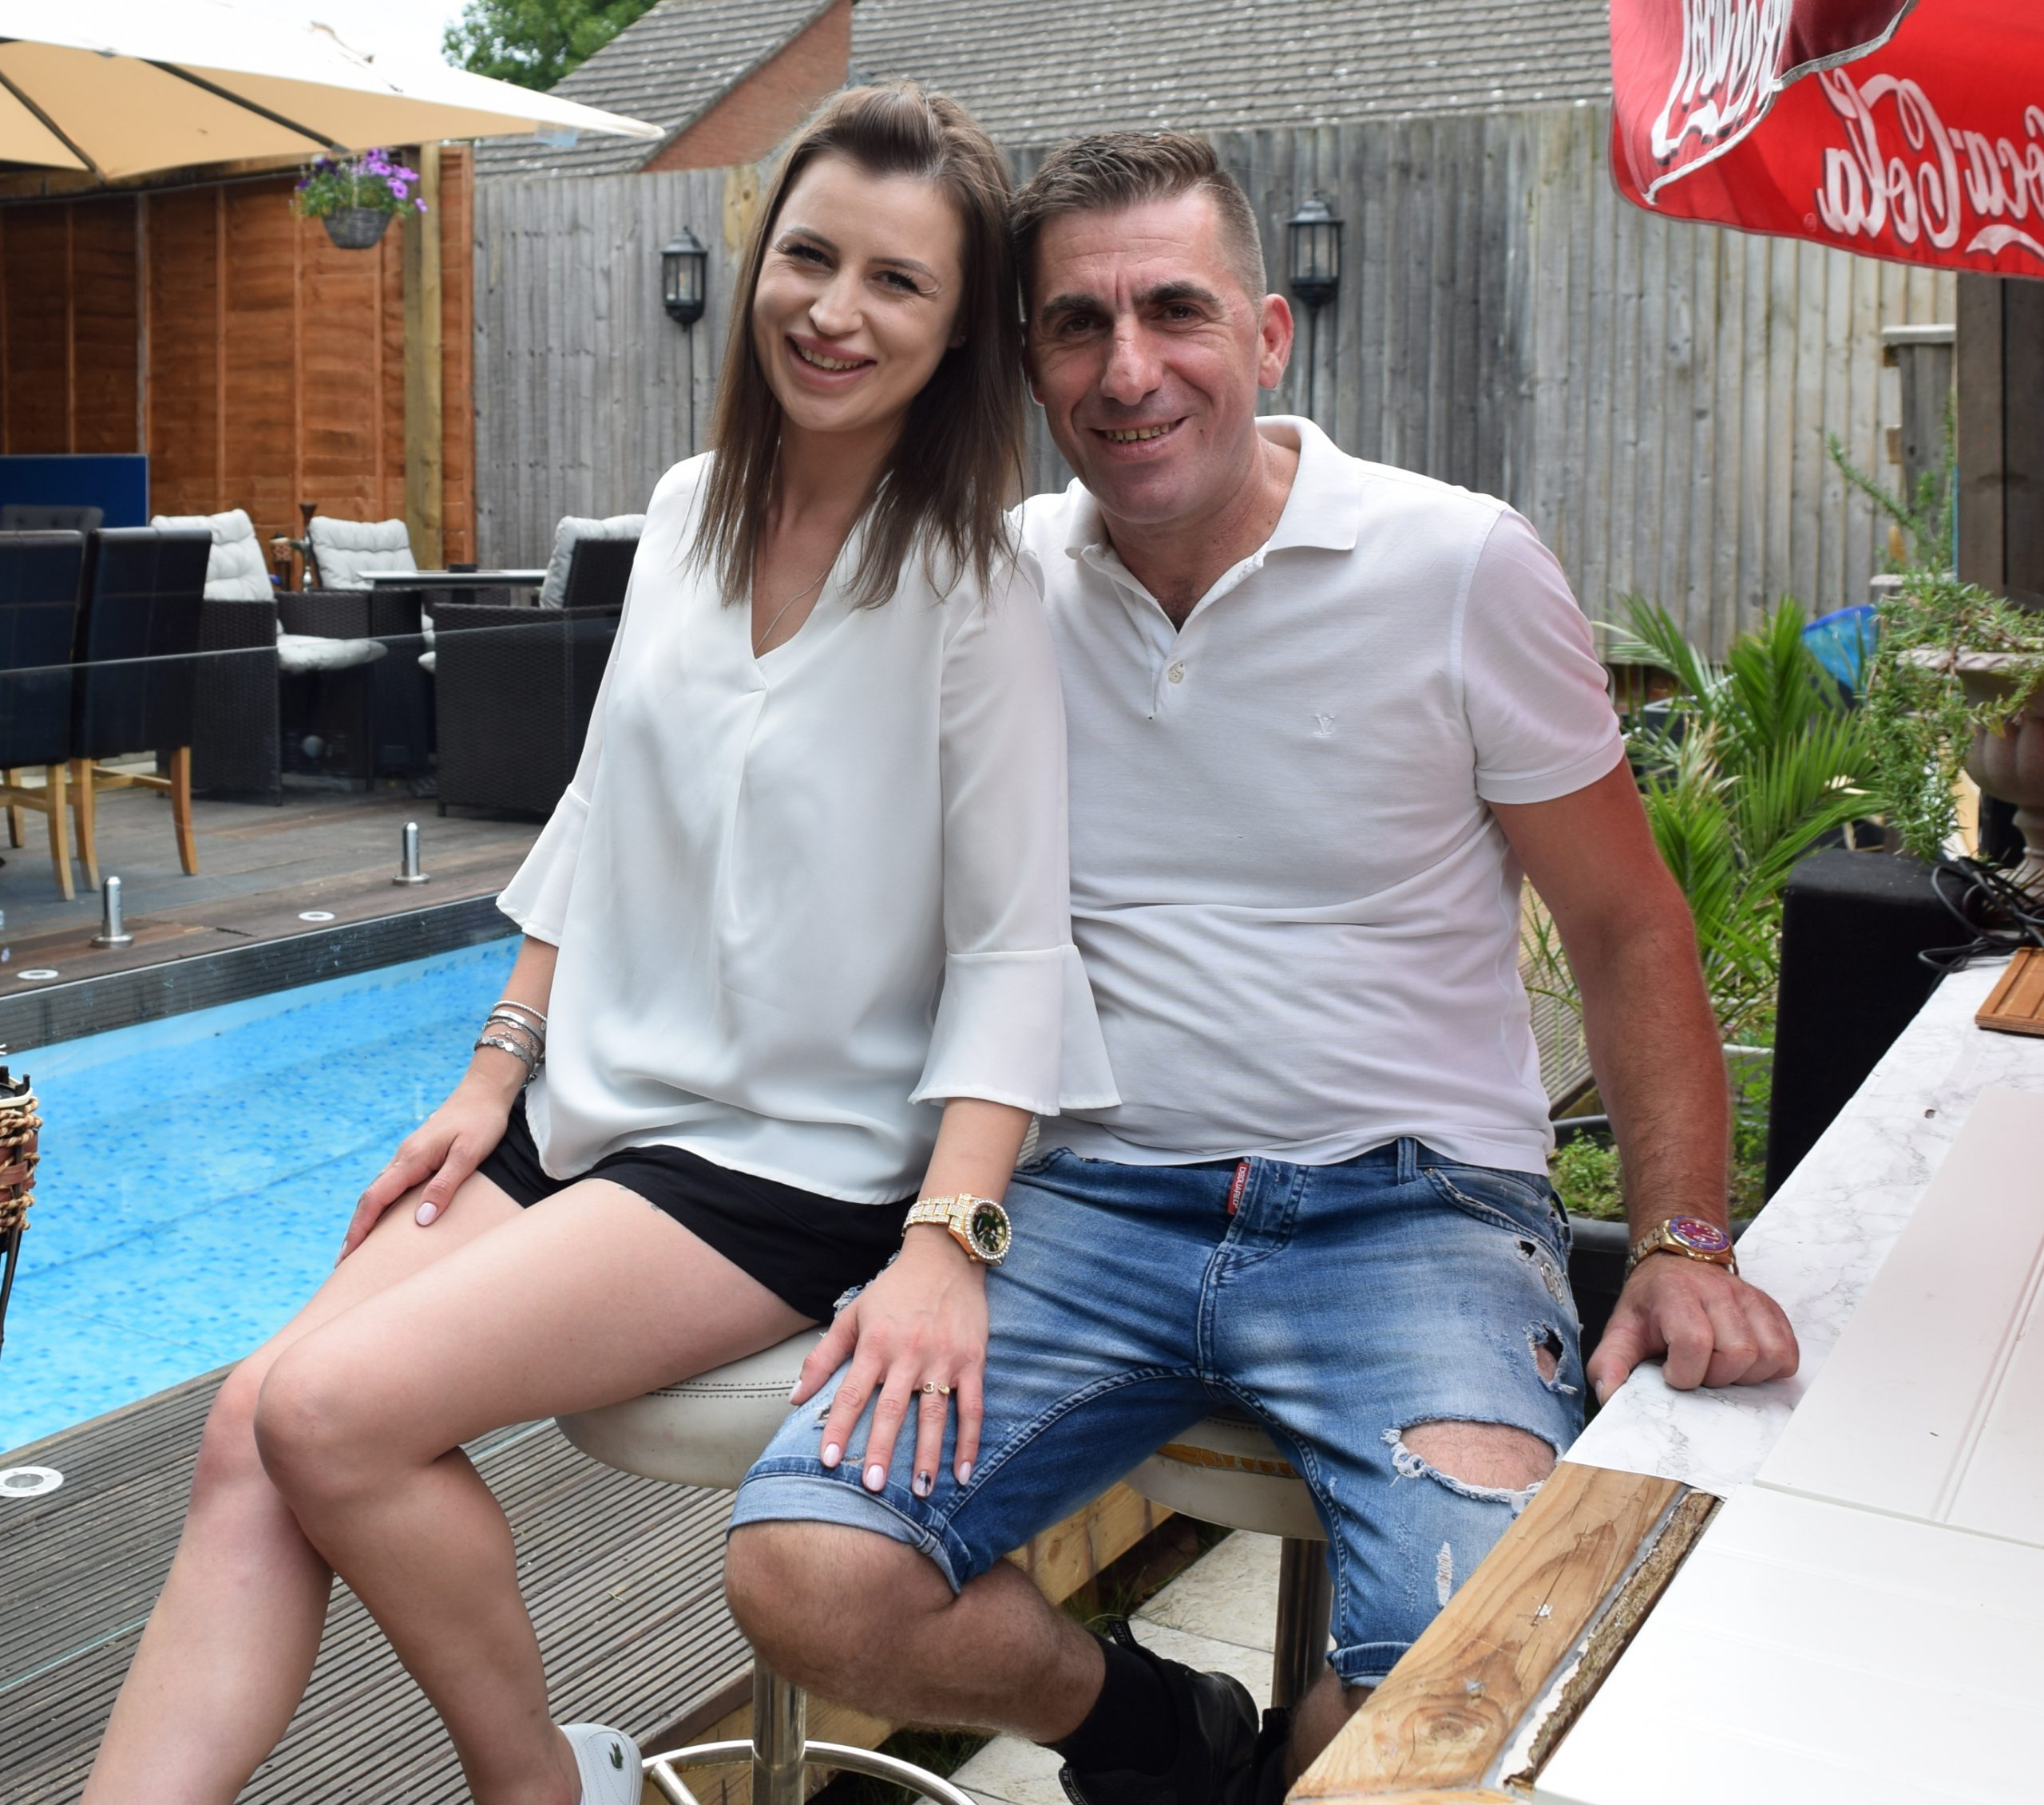 An Albanian pub landlord turns dreary beer garden into a Spanish resort with hot tub, terrace and pool costing just £100 off Gumtree